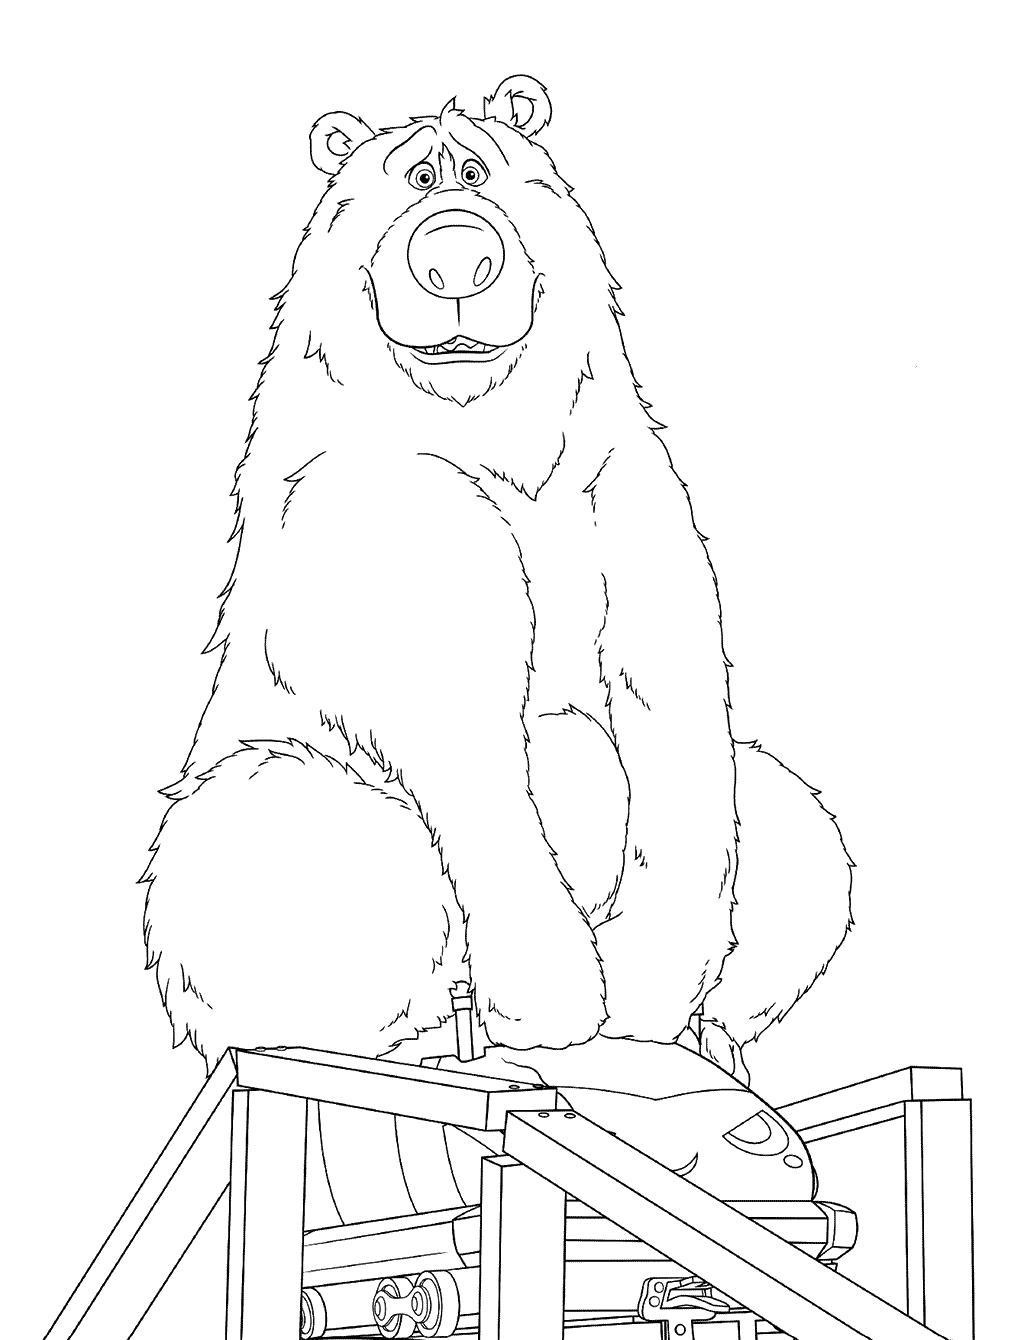 Wonder Park Coloring Pages Best Coloring Pages For Kids